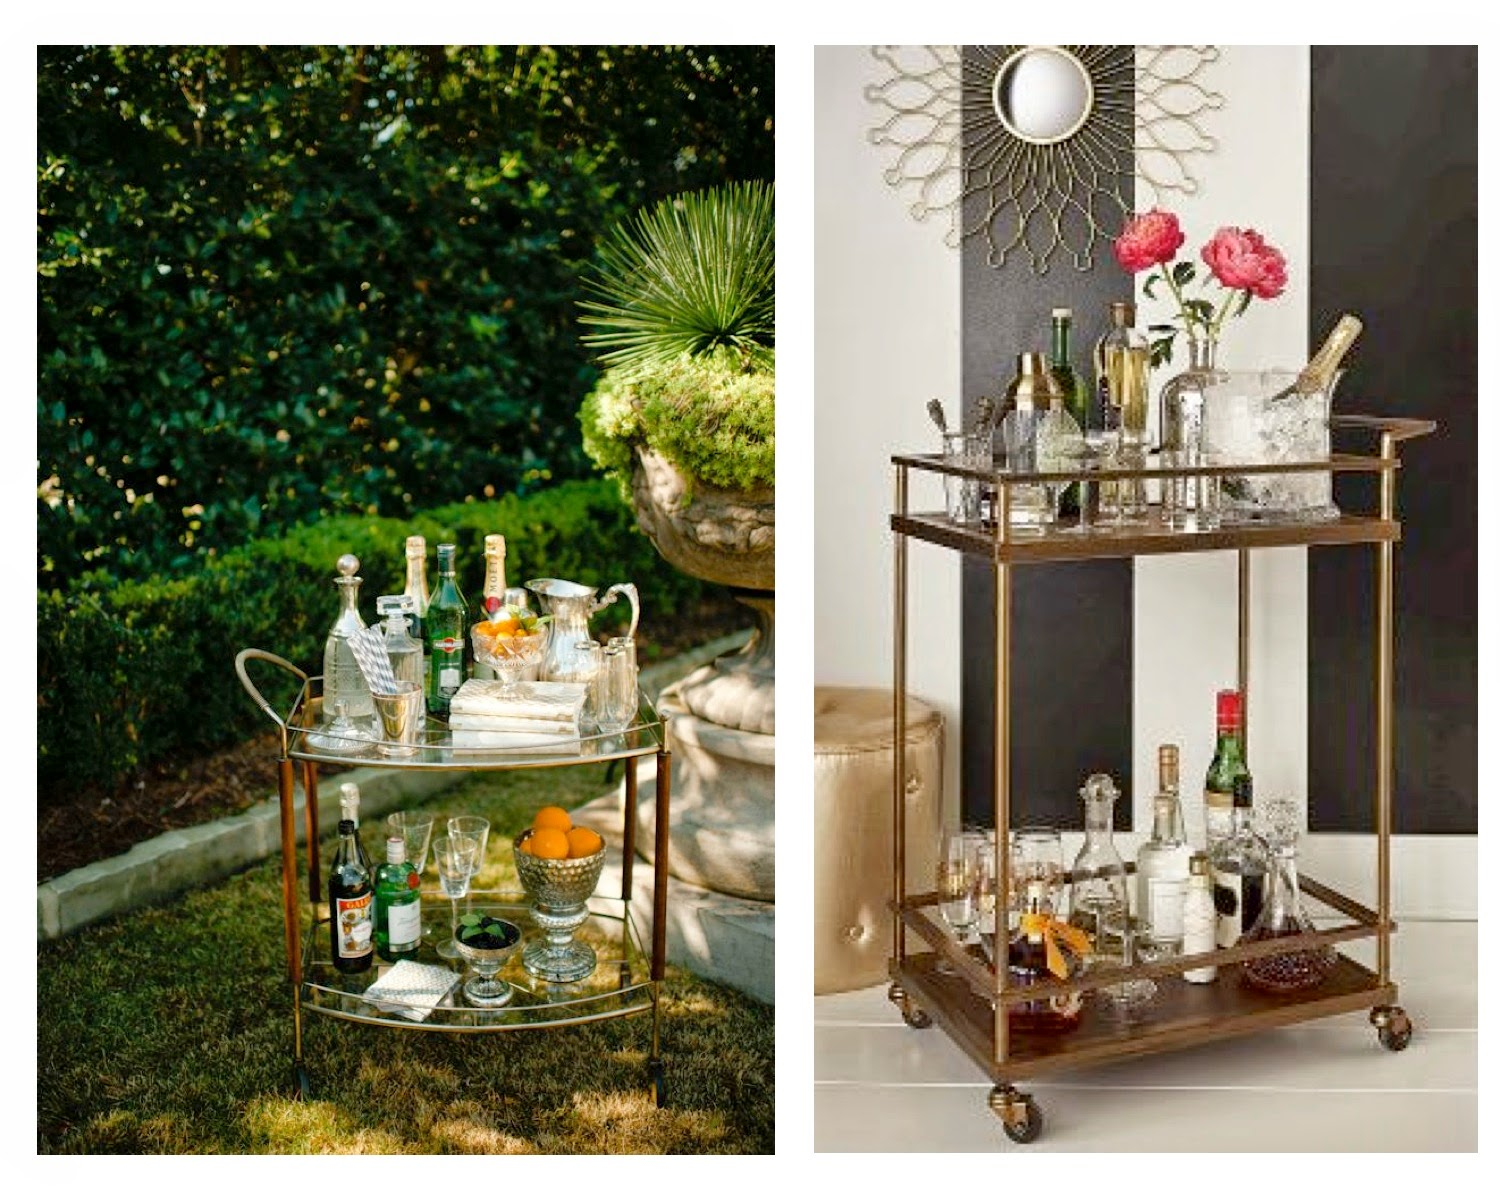 Don T Limit Your Bar Cart To Just Inside The House While Enjoying An Outside Party Set Up For Entertaining On A Beautiful Day